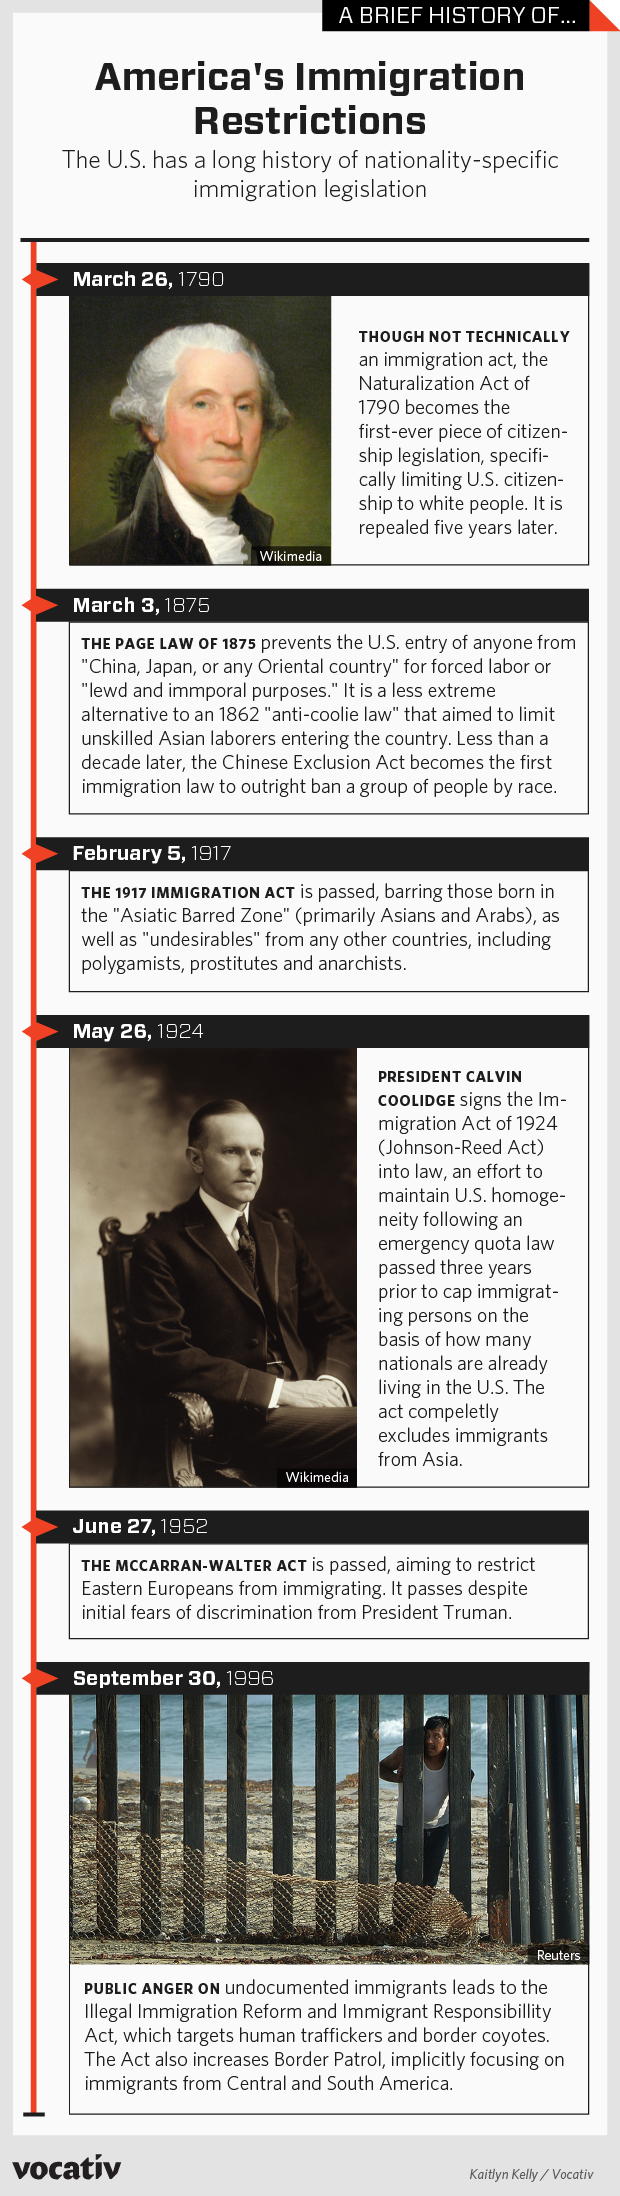 The US has a long history of nationality-specific immigration legislation